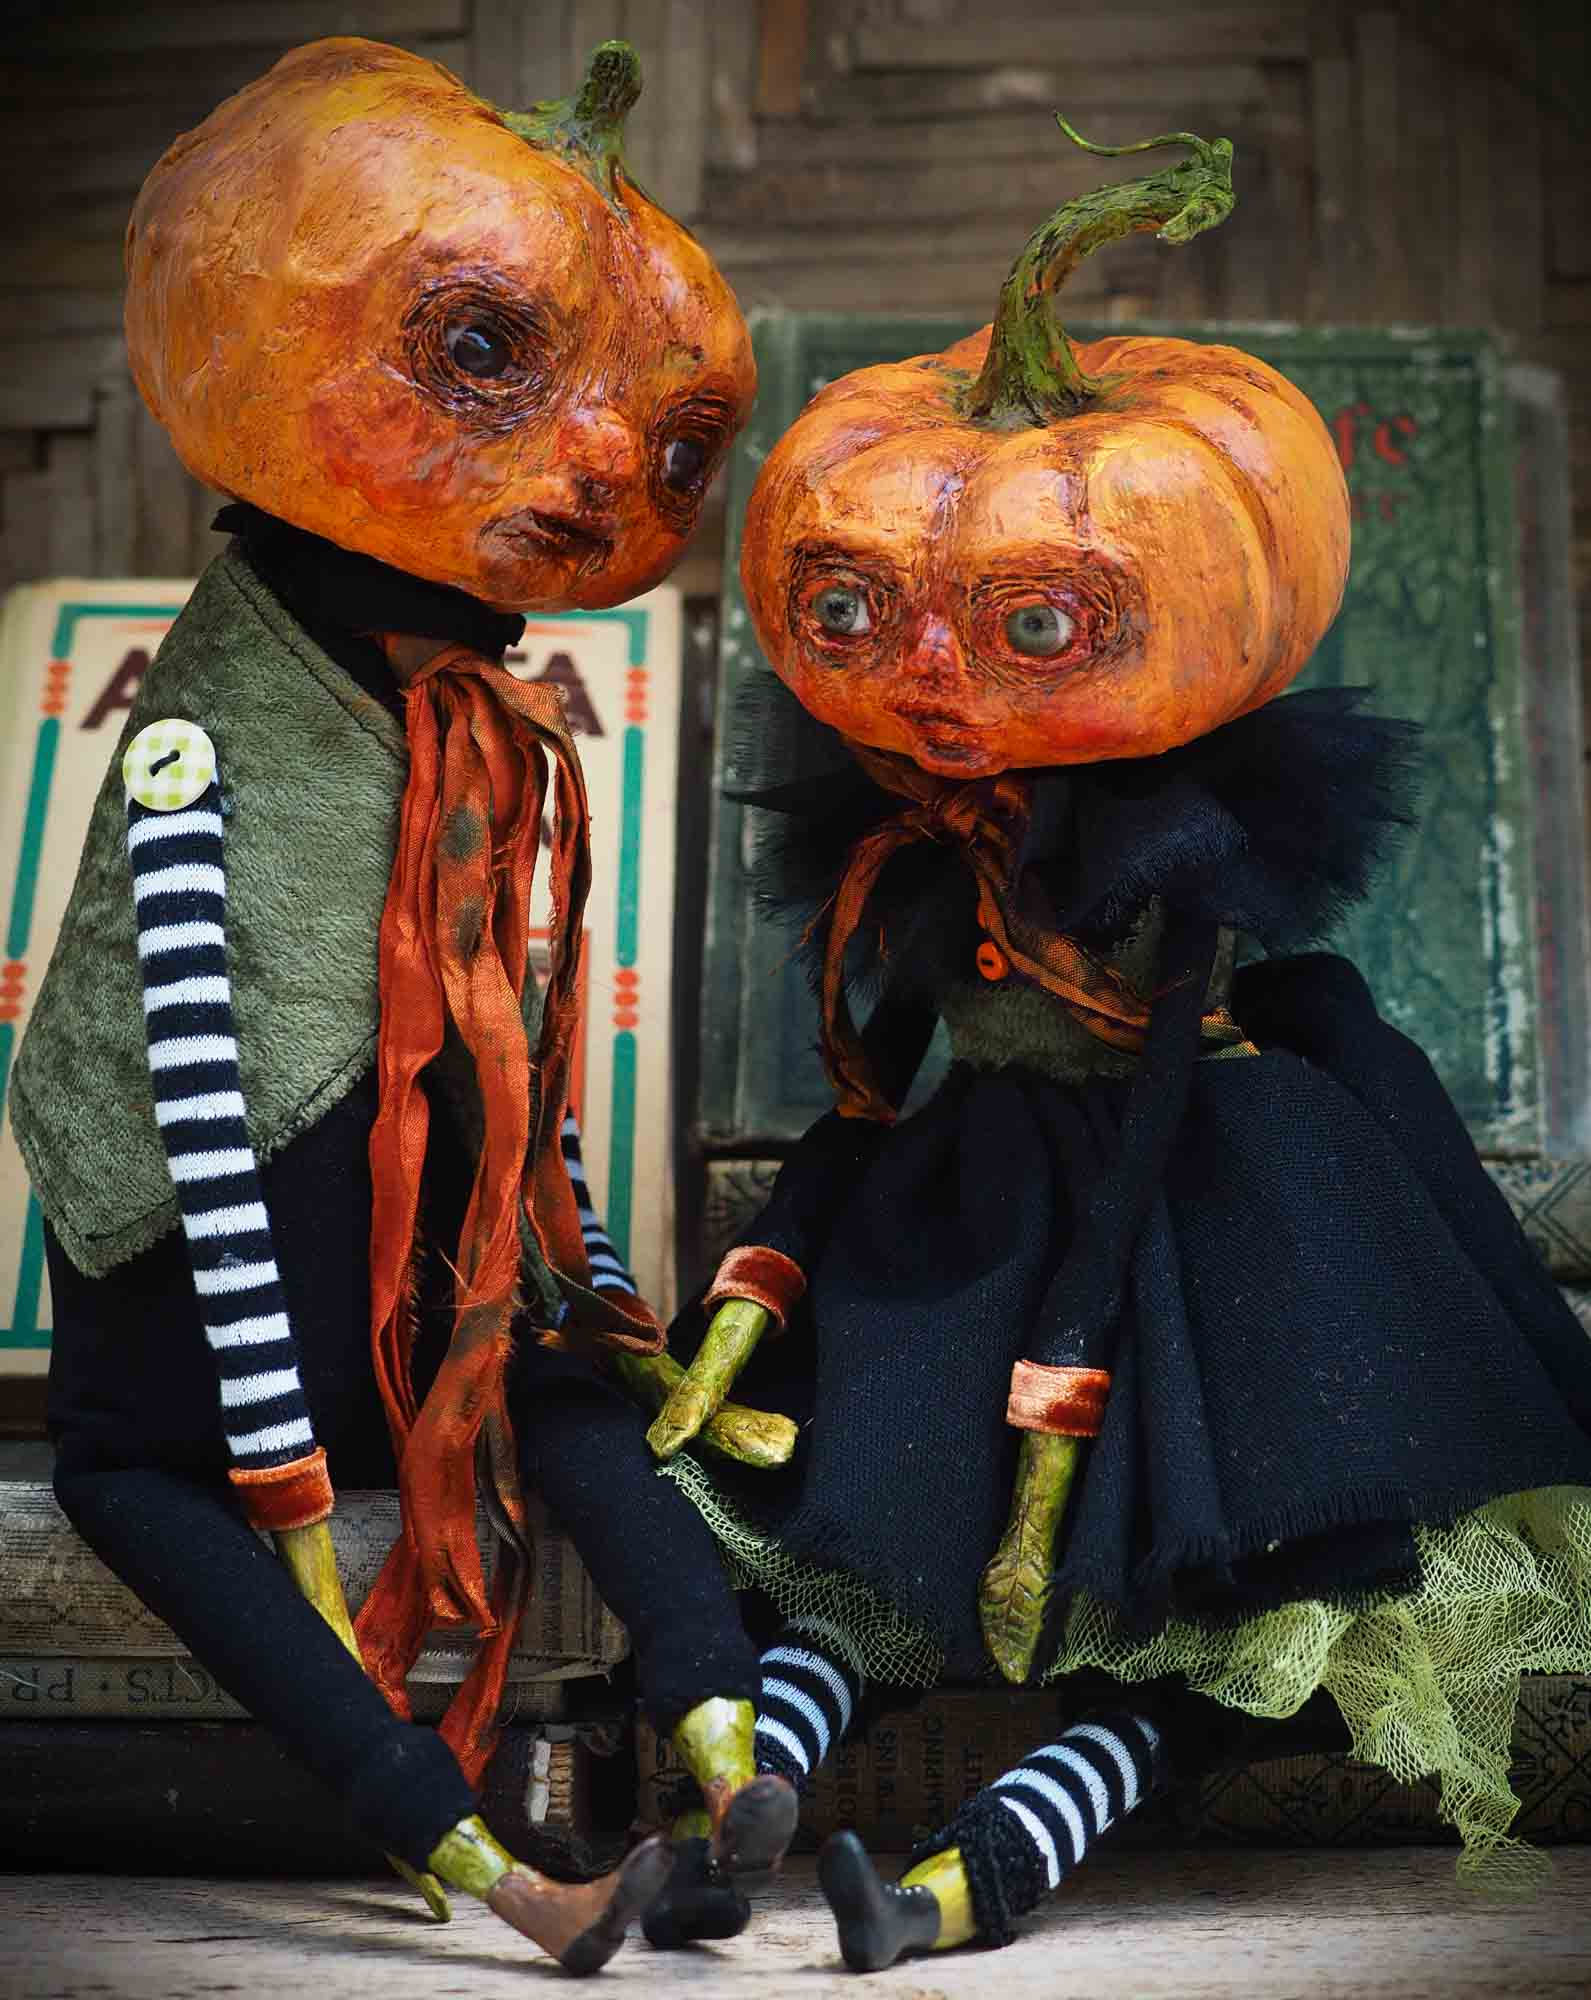 A witch transformed a girl into a Halloween pumpkin monster. This Danita original doll is a handmade jack-o-lantern soft sculpture as home decoration ornament. Carefully handmade with whimsical folk art roots, the spooky ghosts, witches, vampires, ghouls, and jack-o-lantern doll toys of Danita are full of mystery lore.